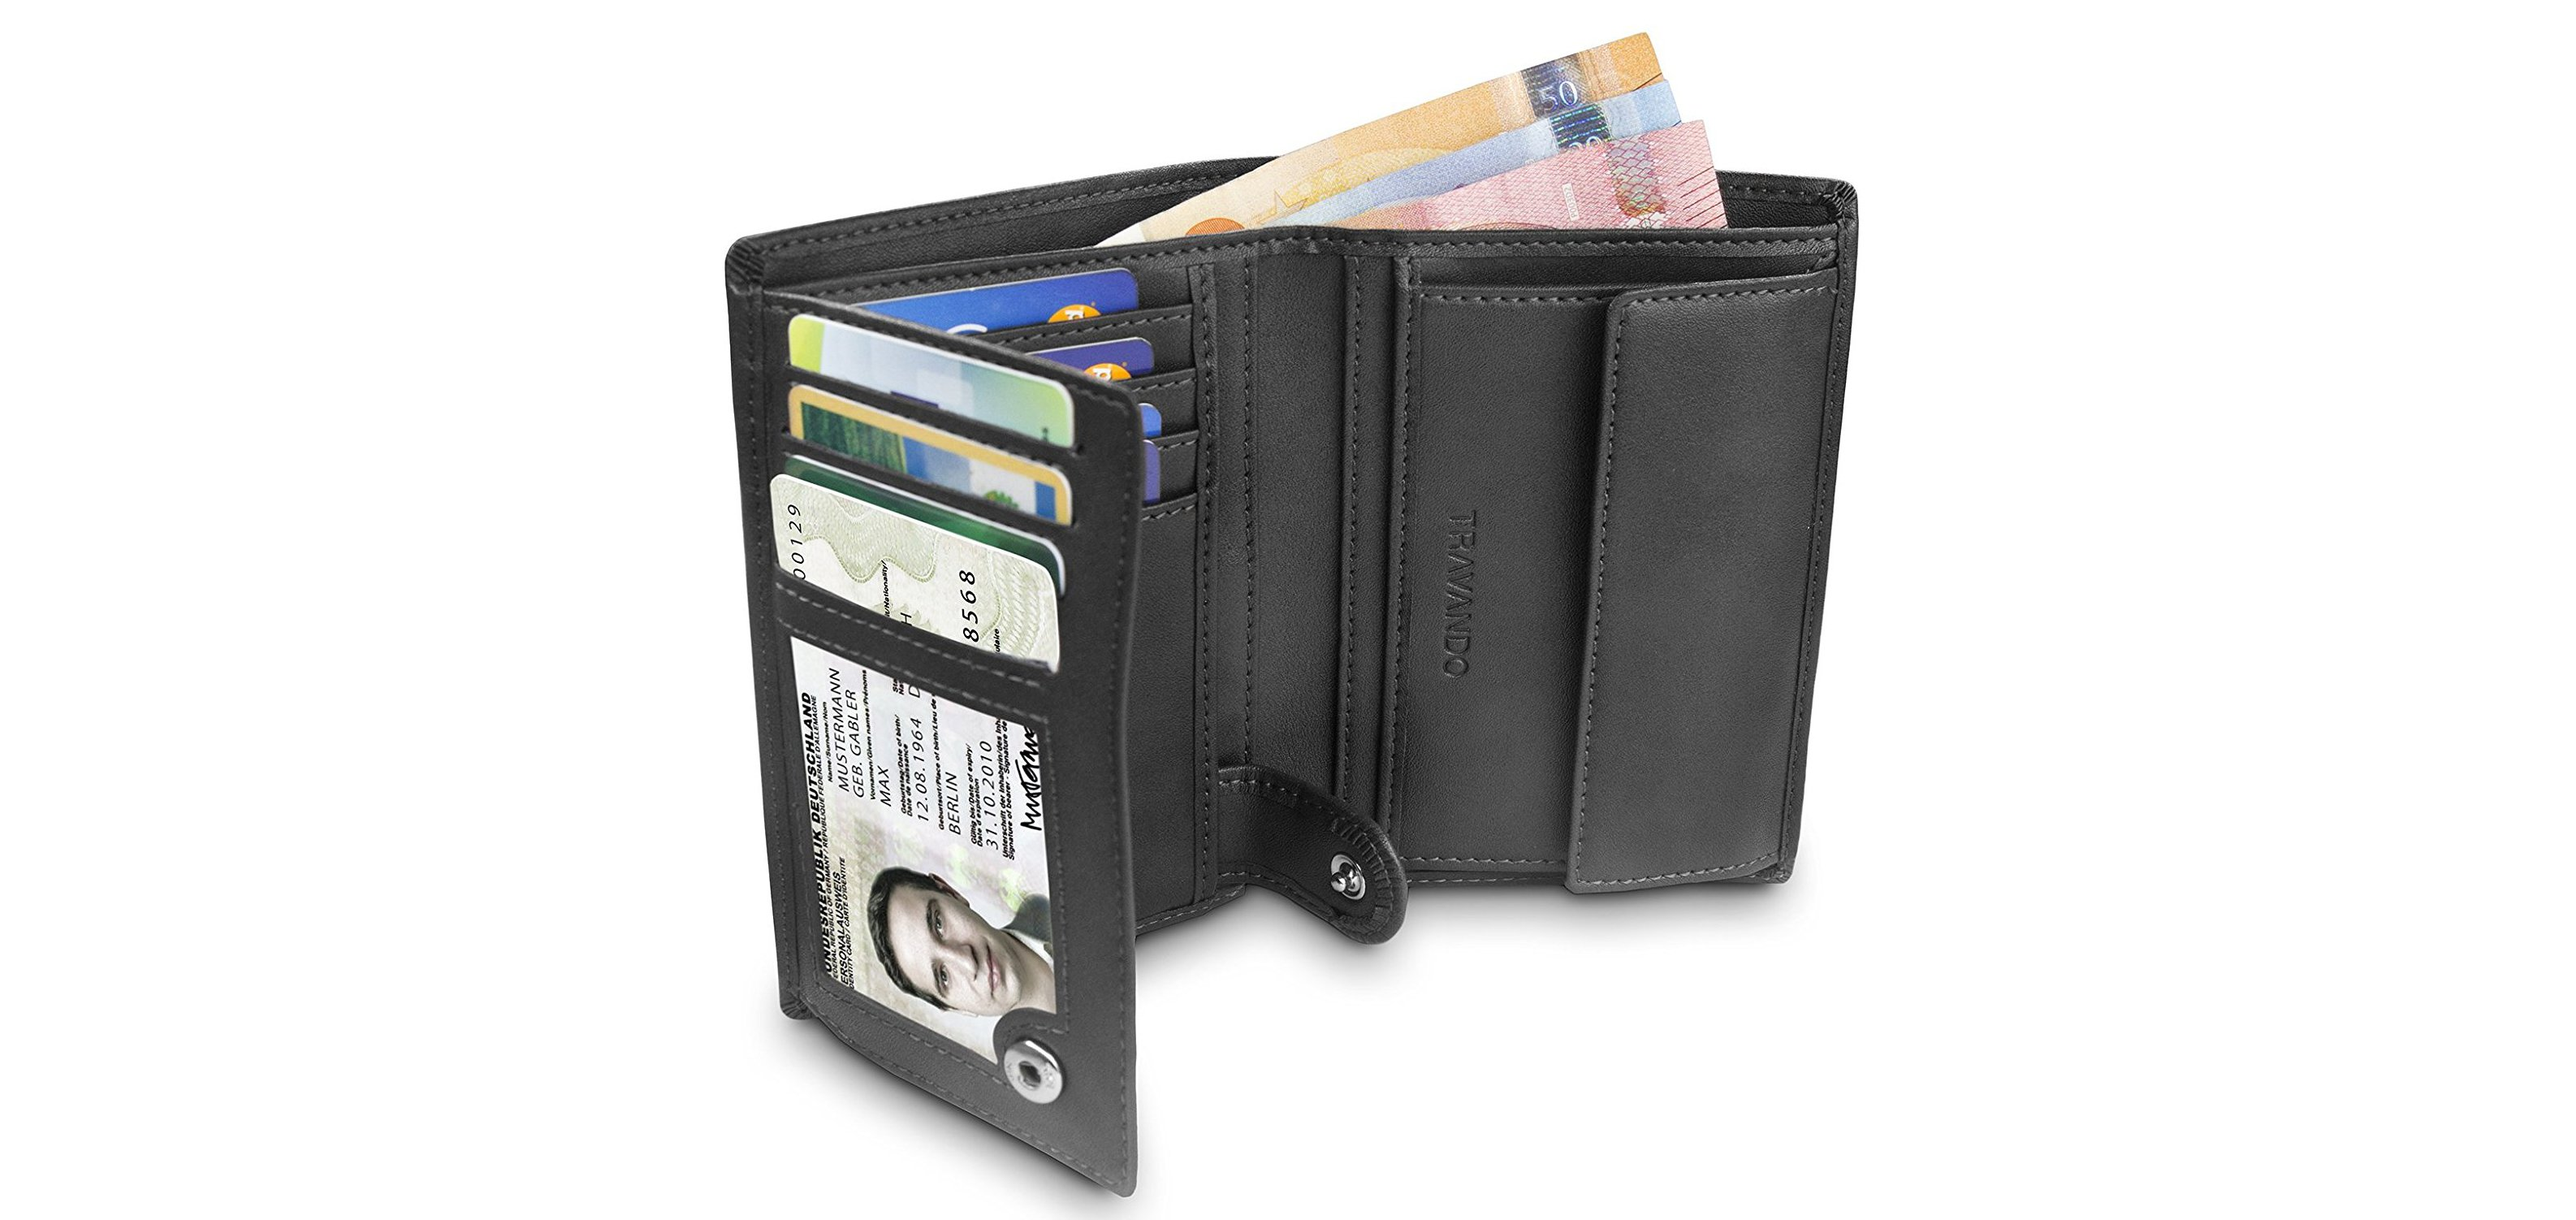 ac4f7d39860ed You don t need to buy real leather to get a stylish and practical wallet.  This Travando offering is the best faux-leather wallet on the market